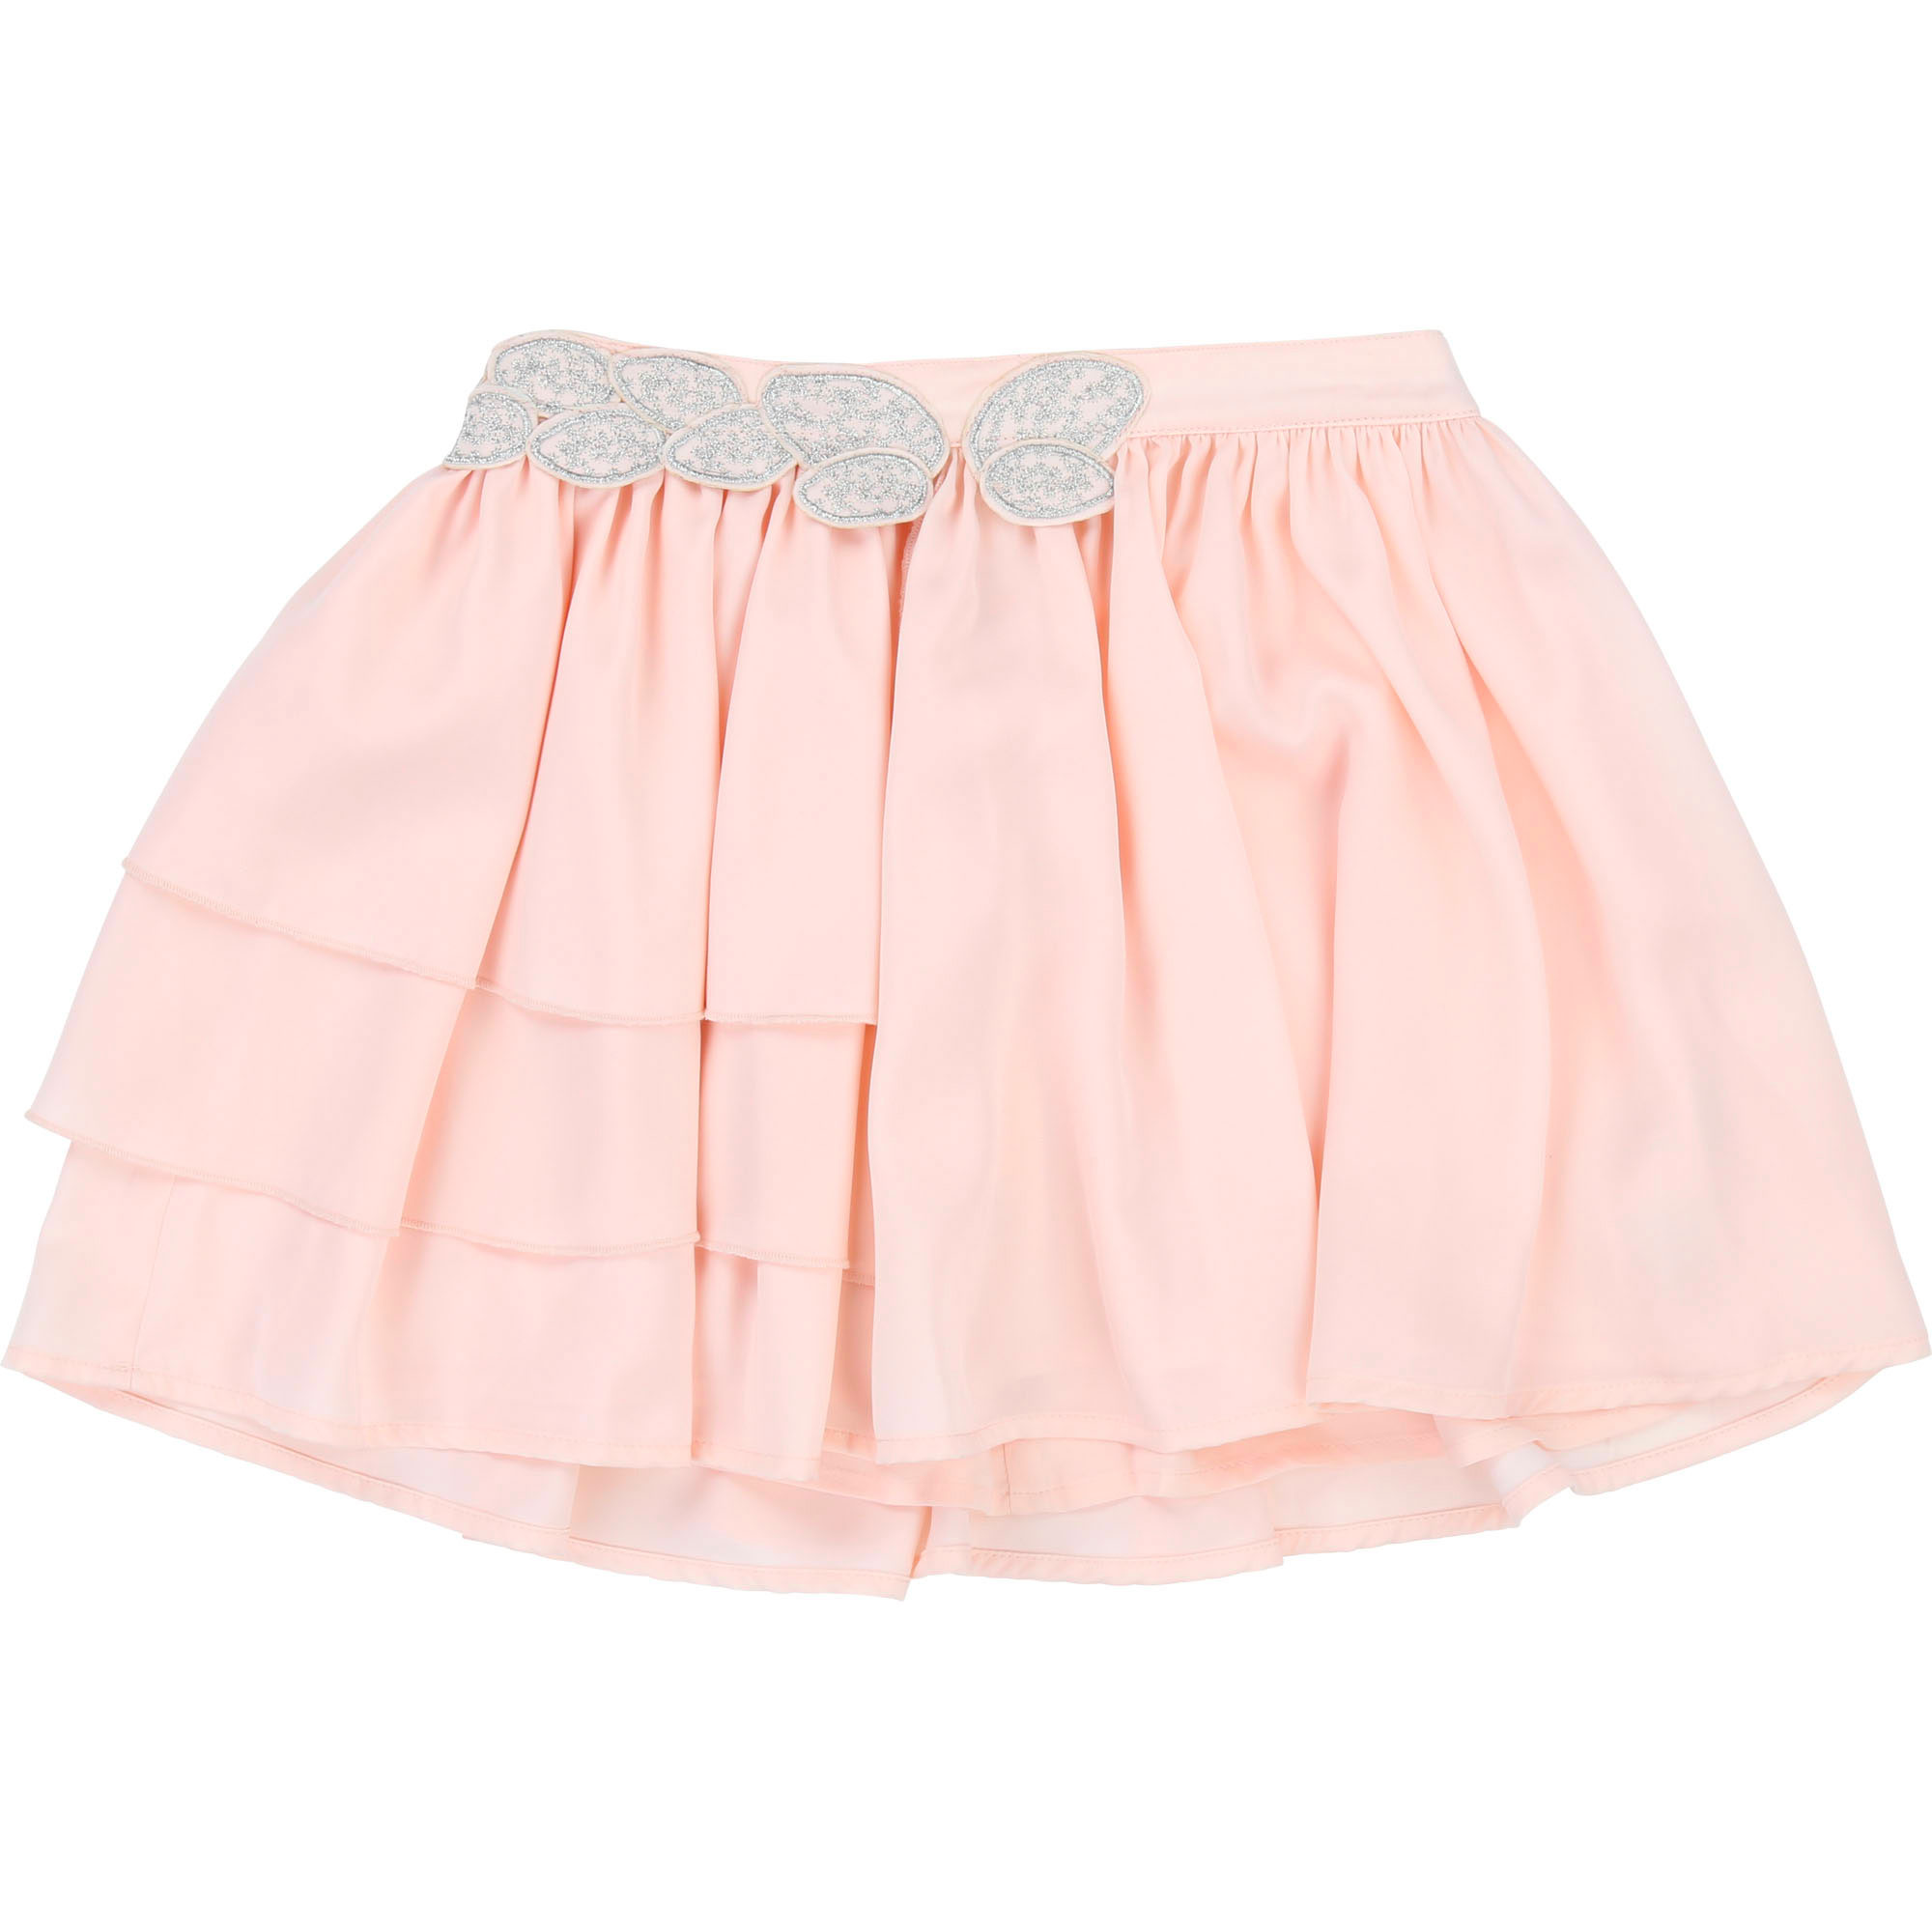 Satin skirt CARREMENT BEAU for GIRL